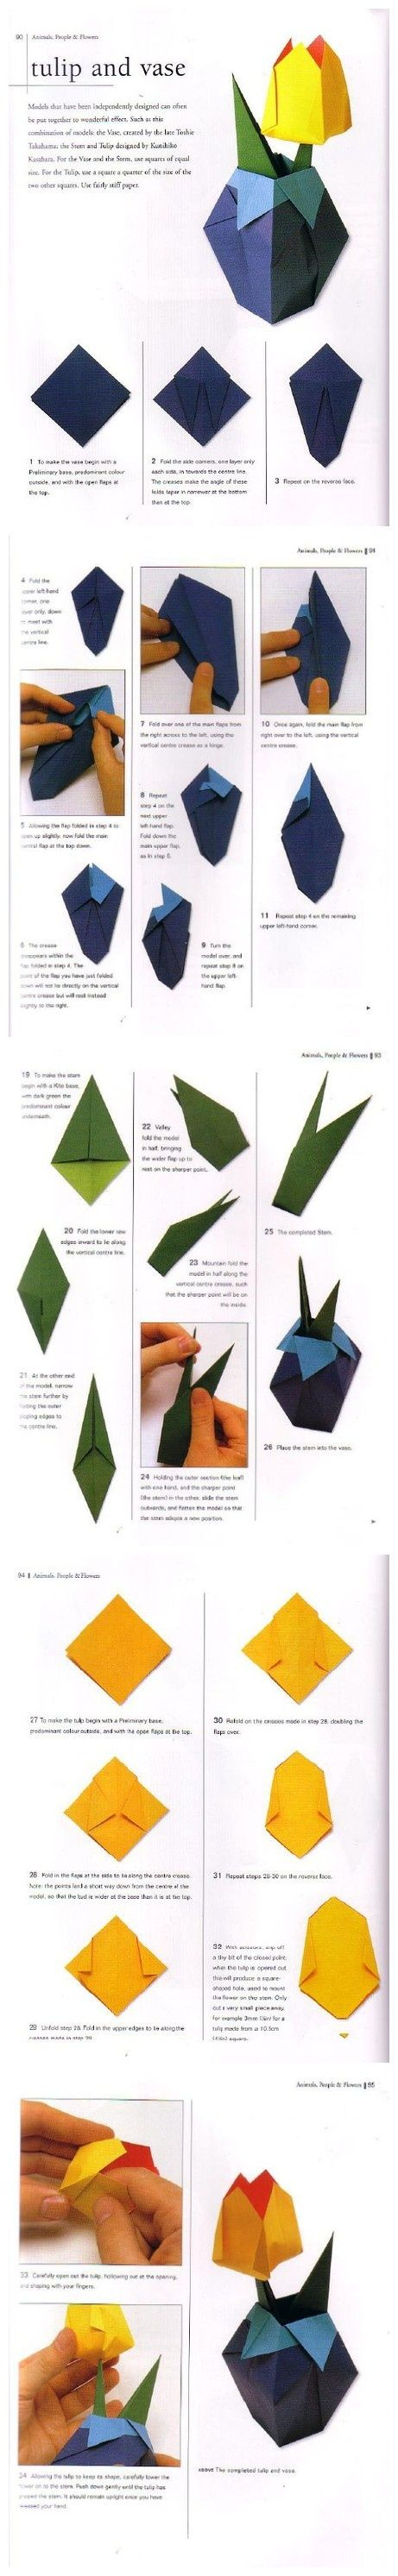 Origami tulip and vase folding instructions crafts pinterest origami tulip and vase folding instructions crafts pinterest origami craft and origami paper reviewsmspy